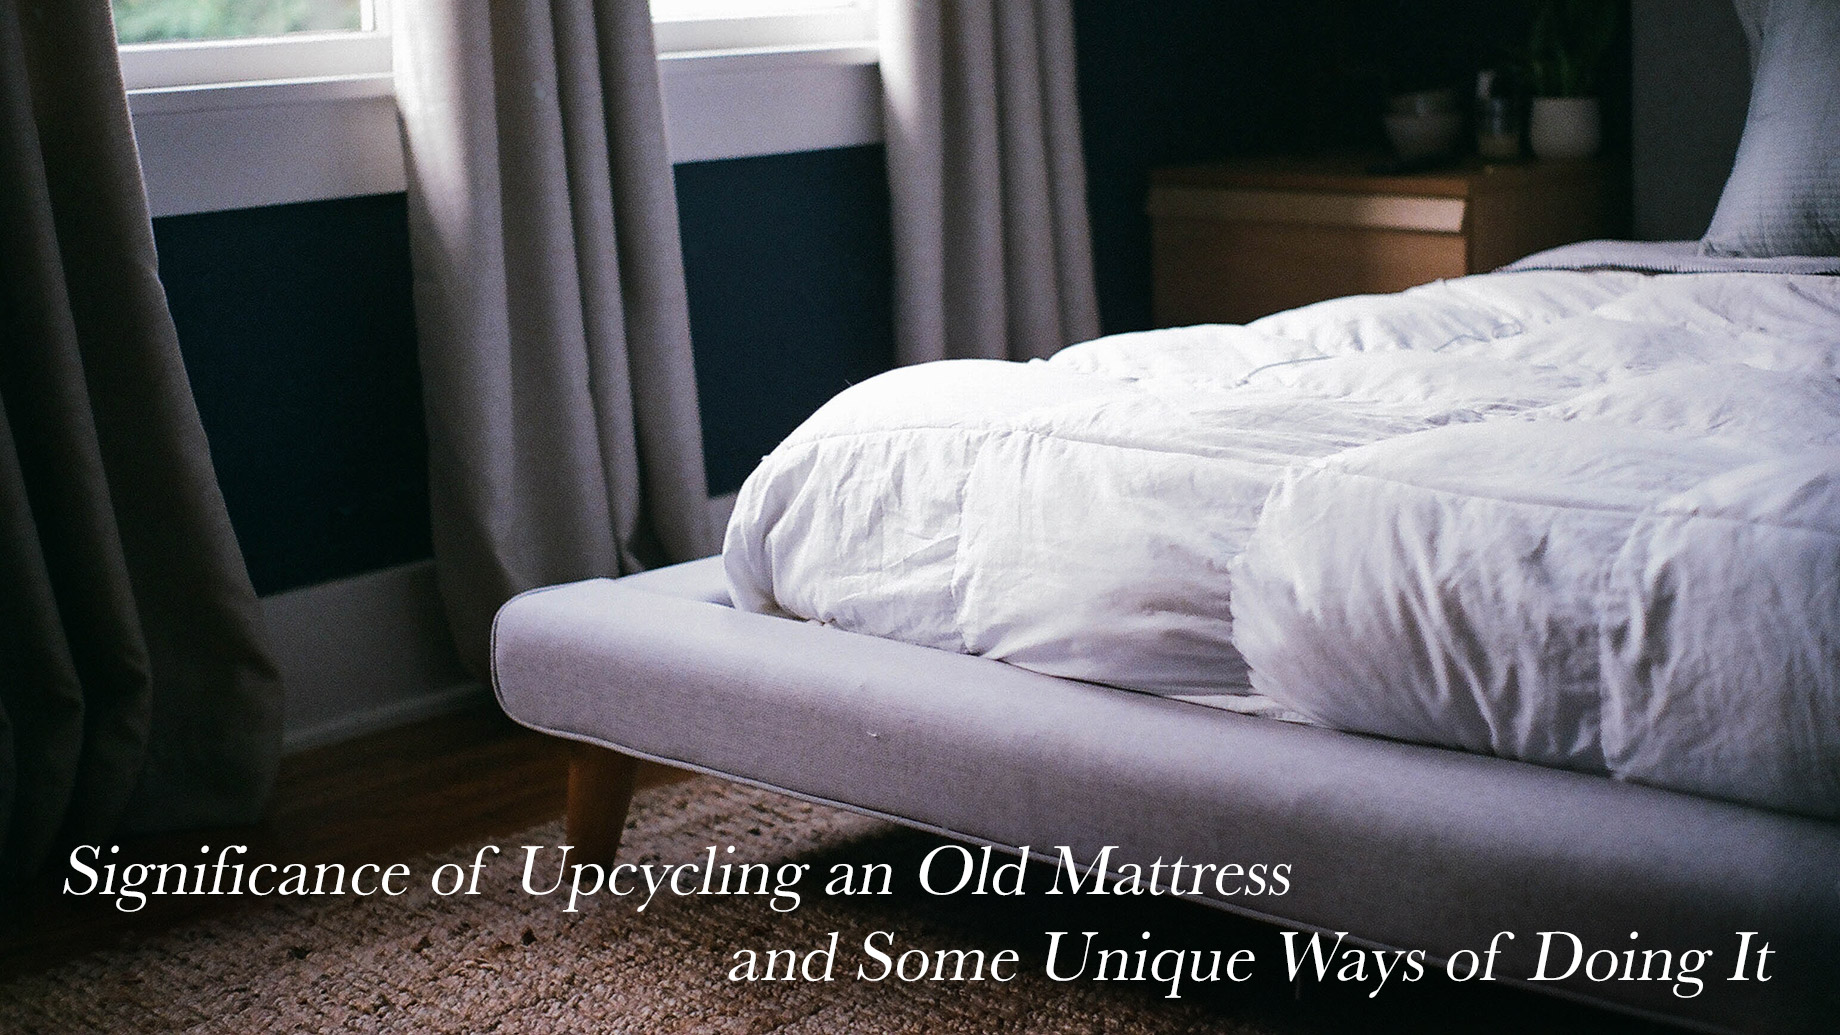 Significance of Upcycling an Old Mattress and Some Unique Ways of Doing It